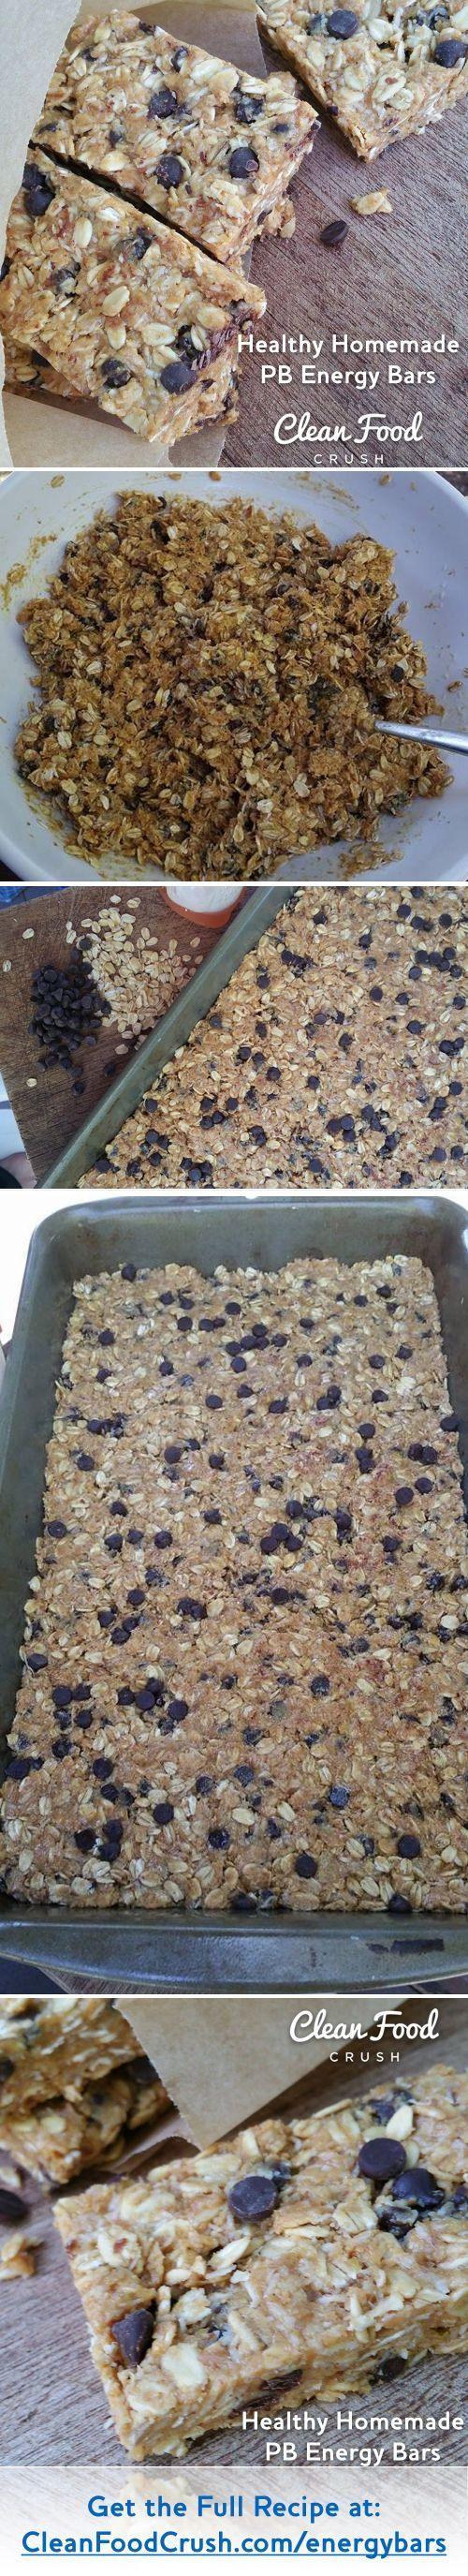 Clean Eating Healthy Homemade PB Energy Bars CleanFoodCrush http://cleanfoodcrush.com/No-Bake-Energy-Bars: